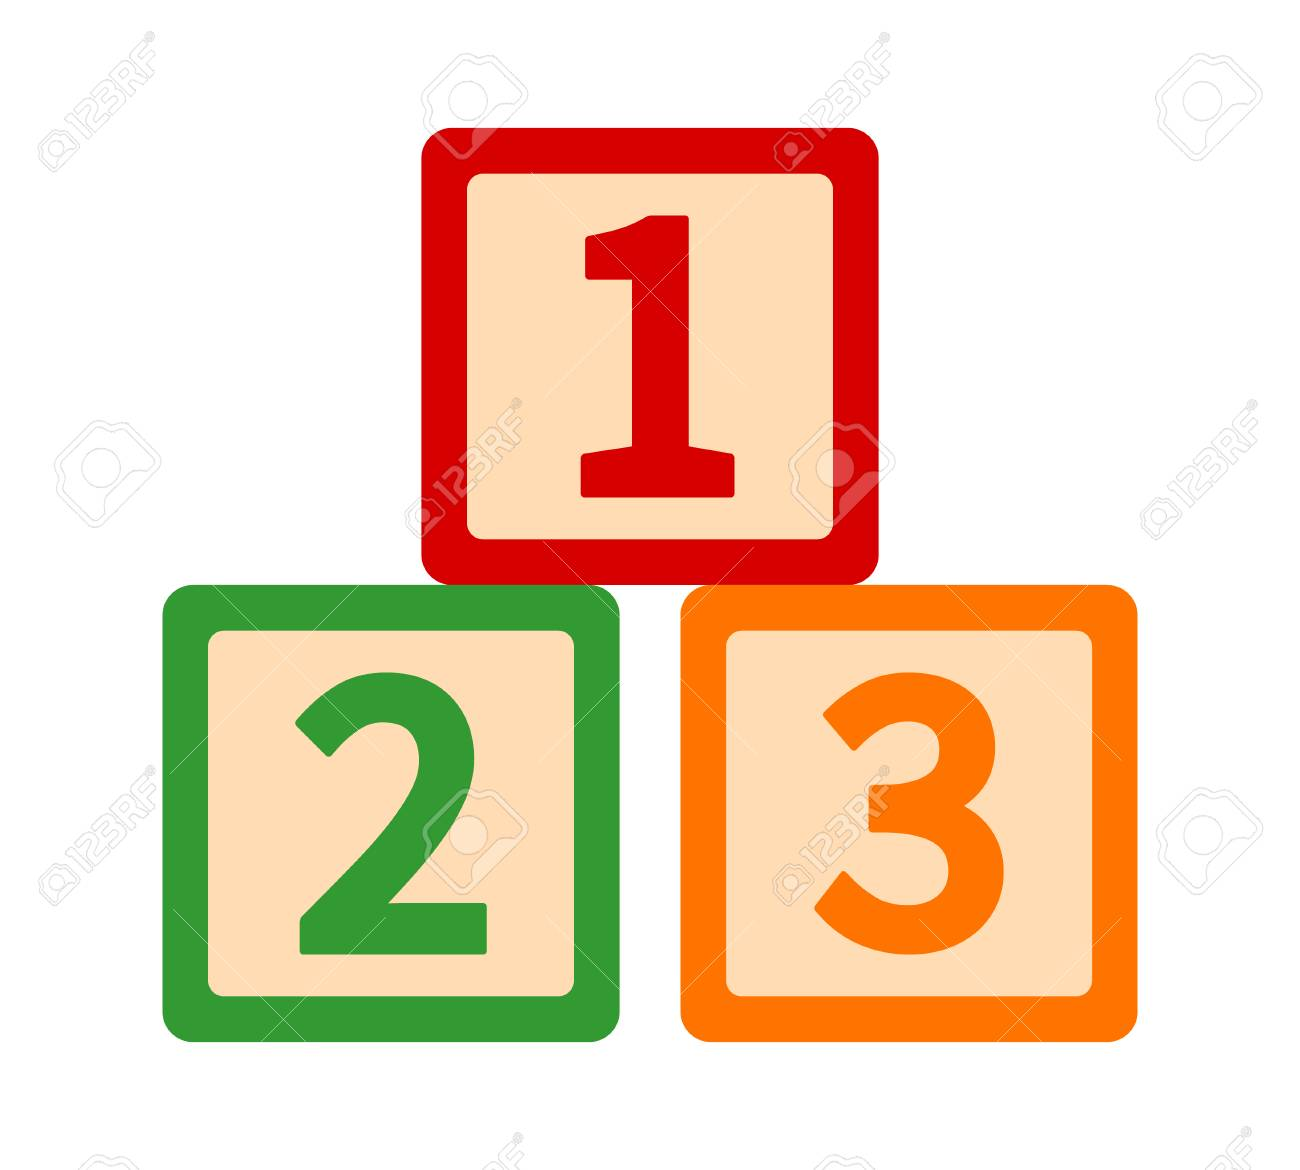 123 123s Toy Blocks Or Cubes With Numbers For Preschool Learning Royalty Free Cliparts Vectors And Stock Illustration Image 105297935